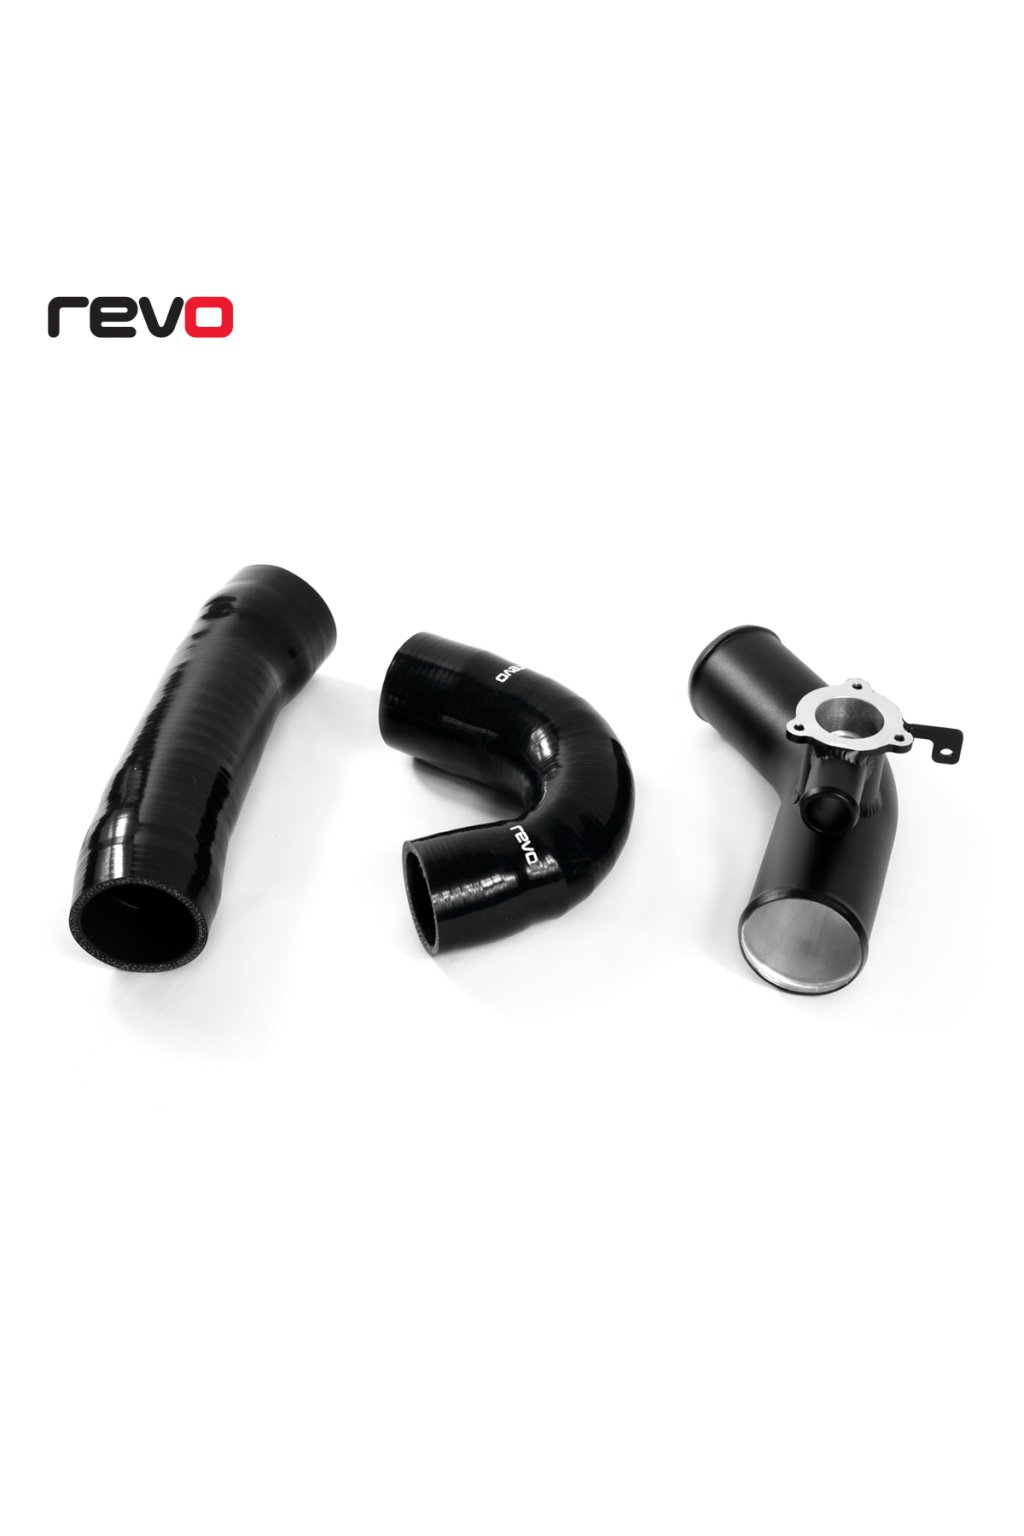 Revo intercooler Pipe Upgrade Kit Ford Mustang 2.3L